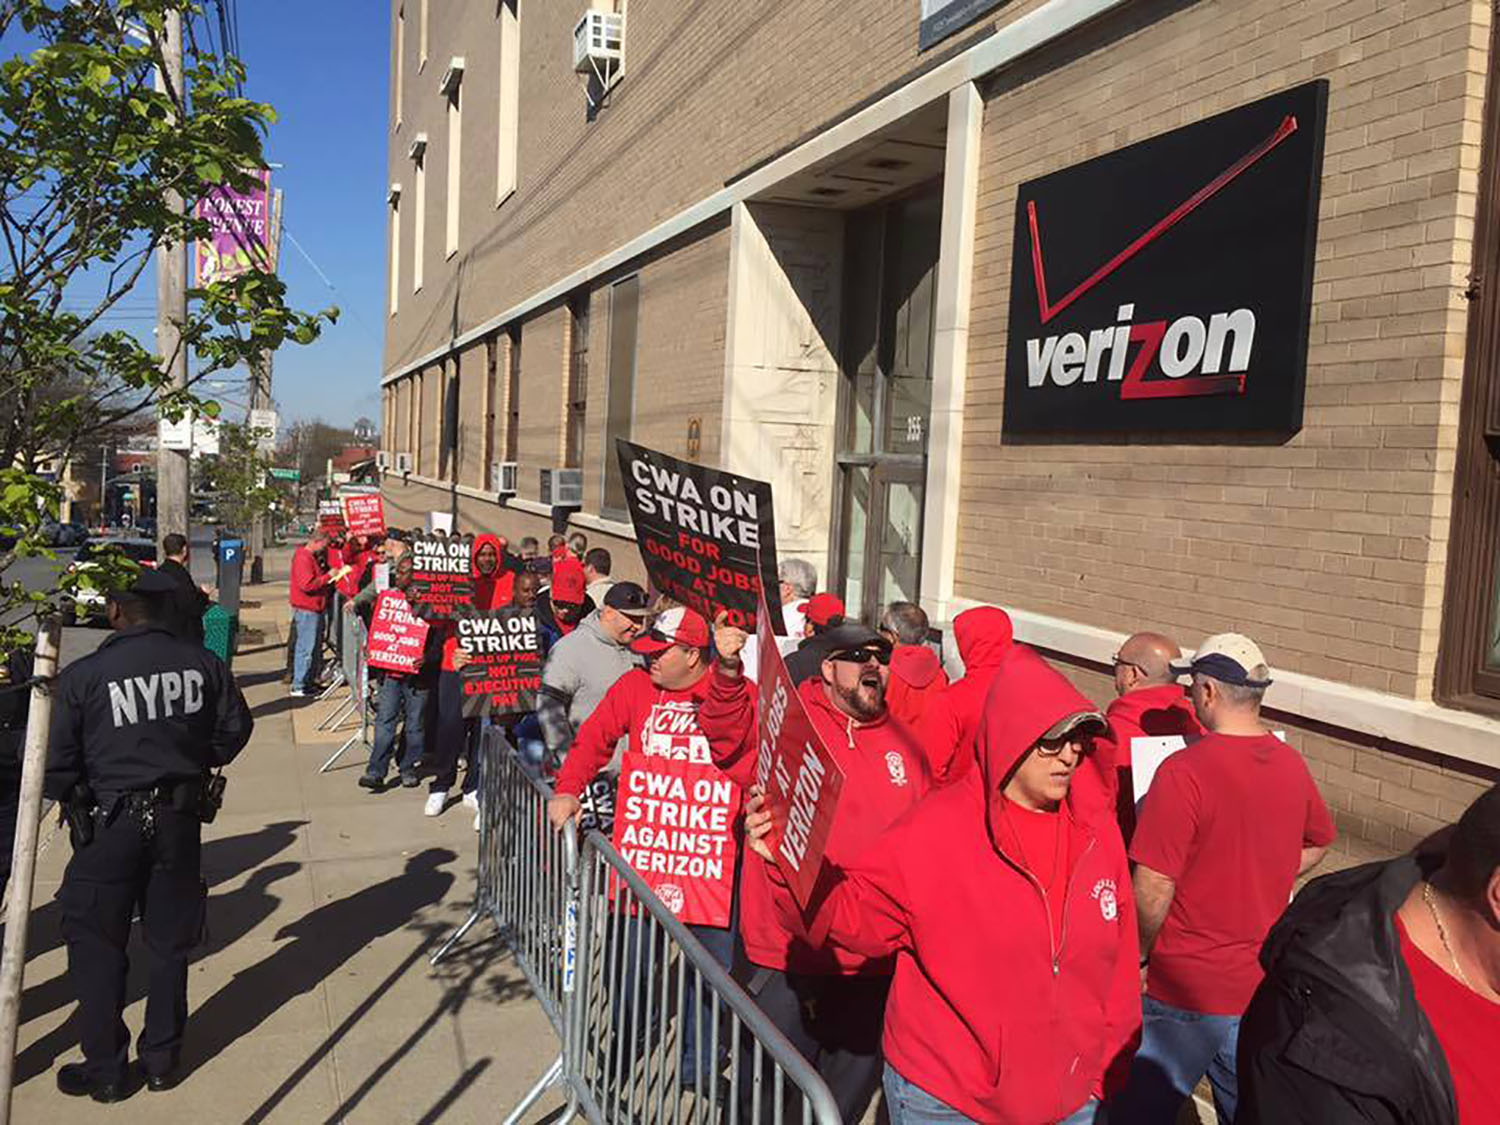 Communication Workers of America members march on strike against Verizon in New York